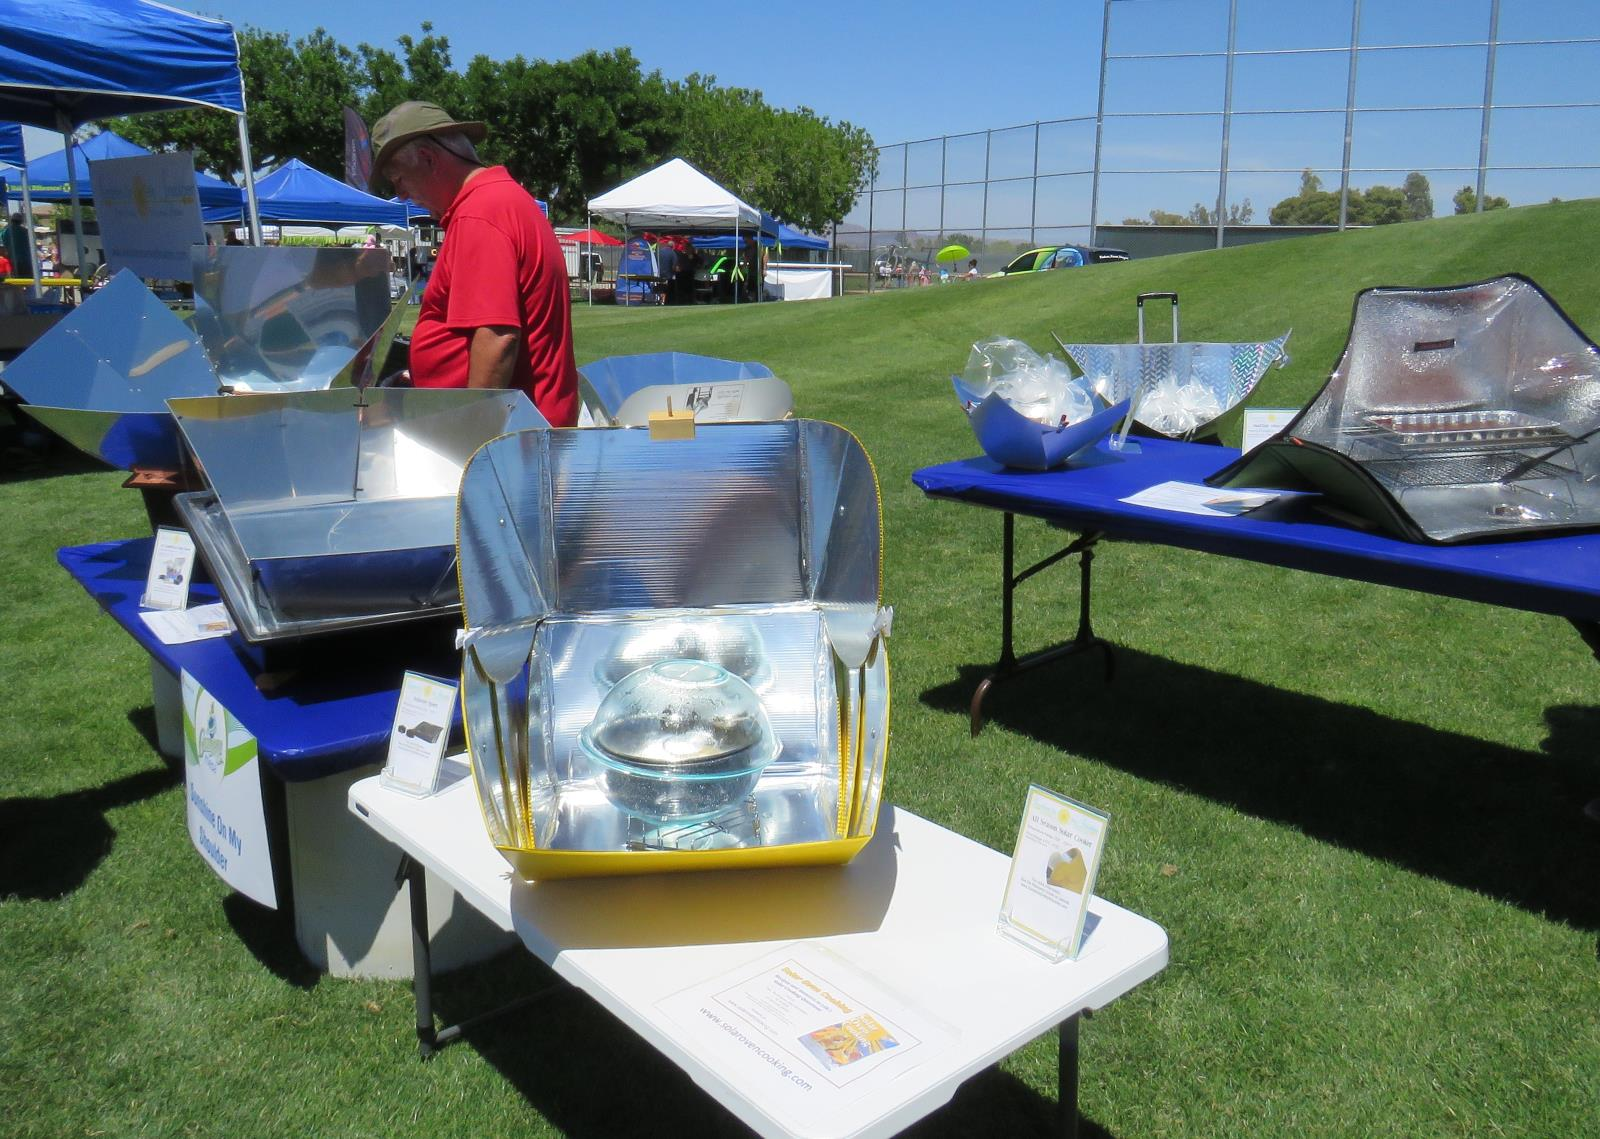 Solar cooking demonstration